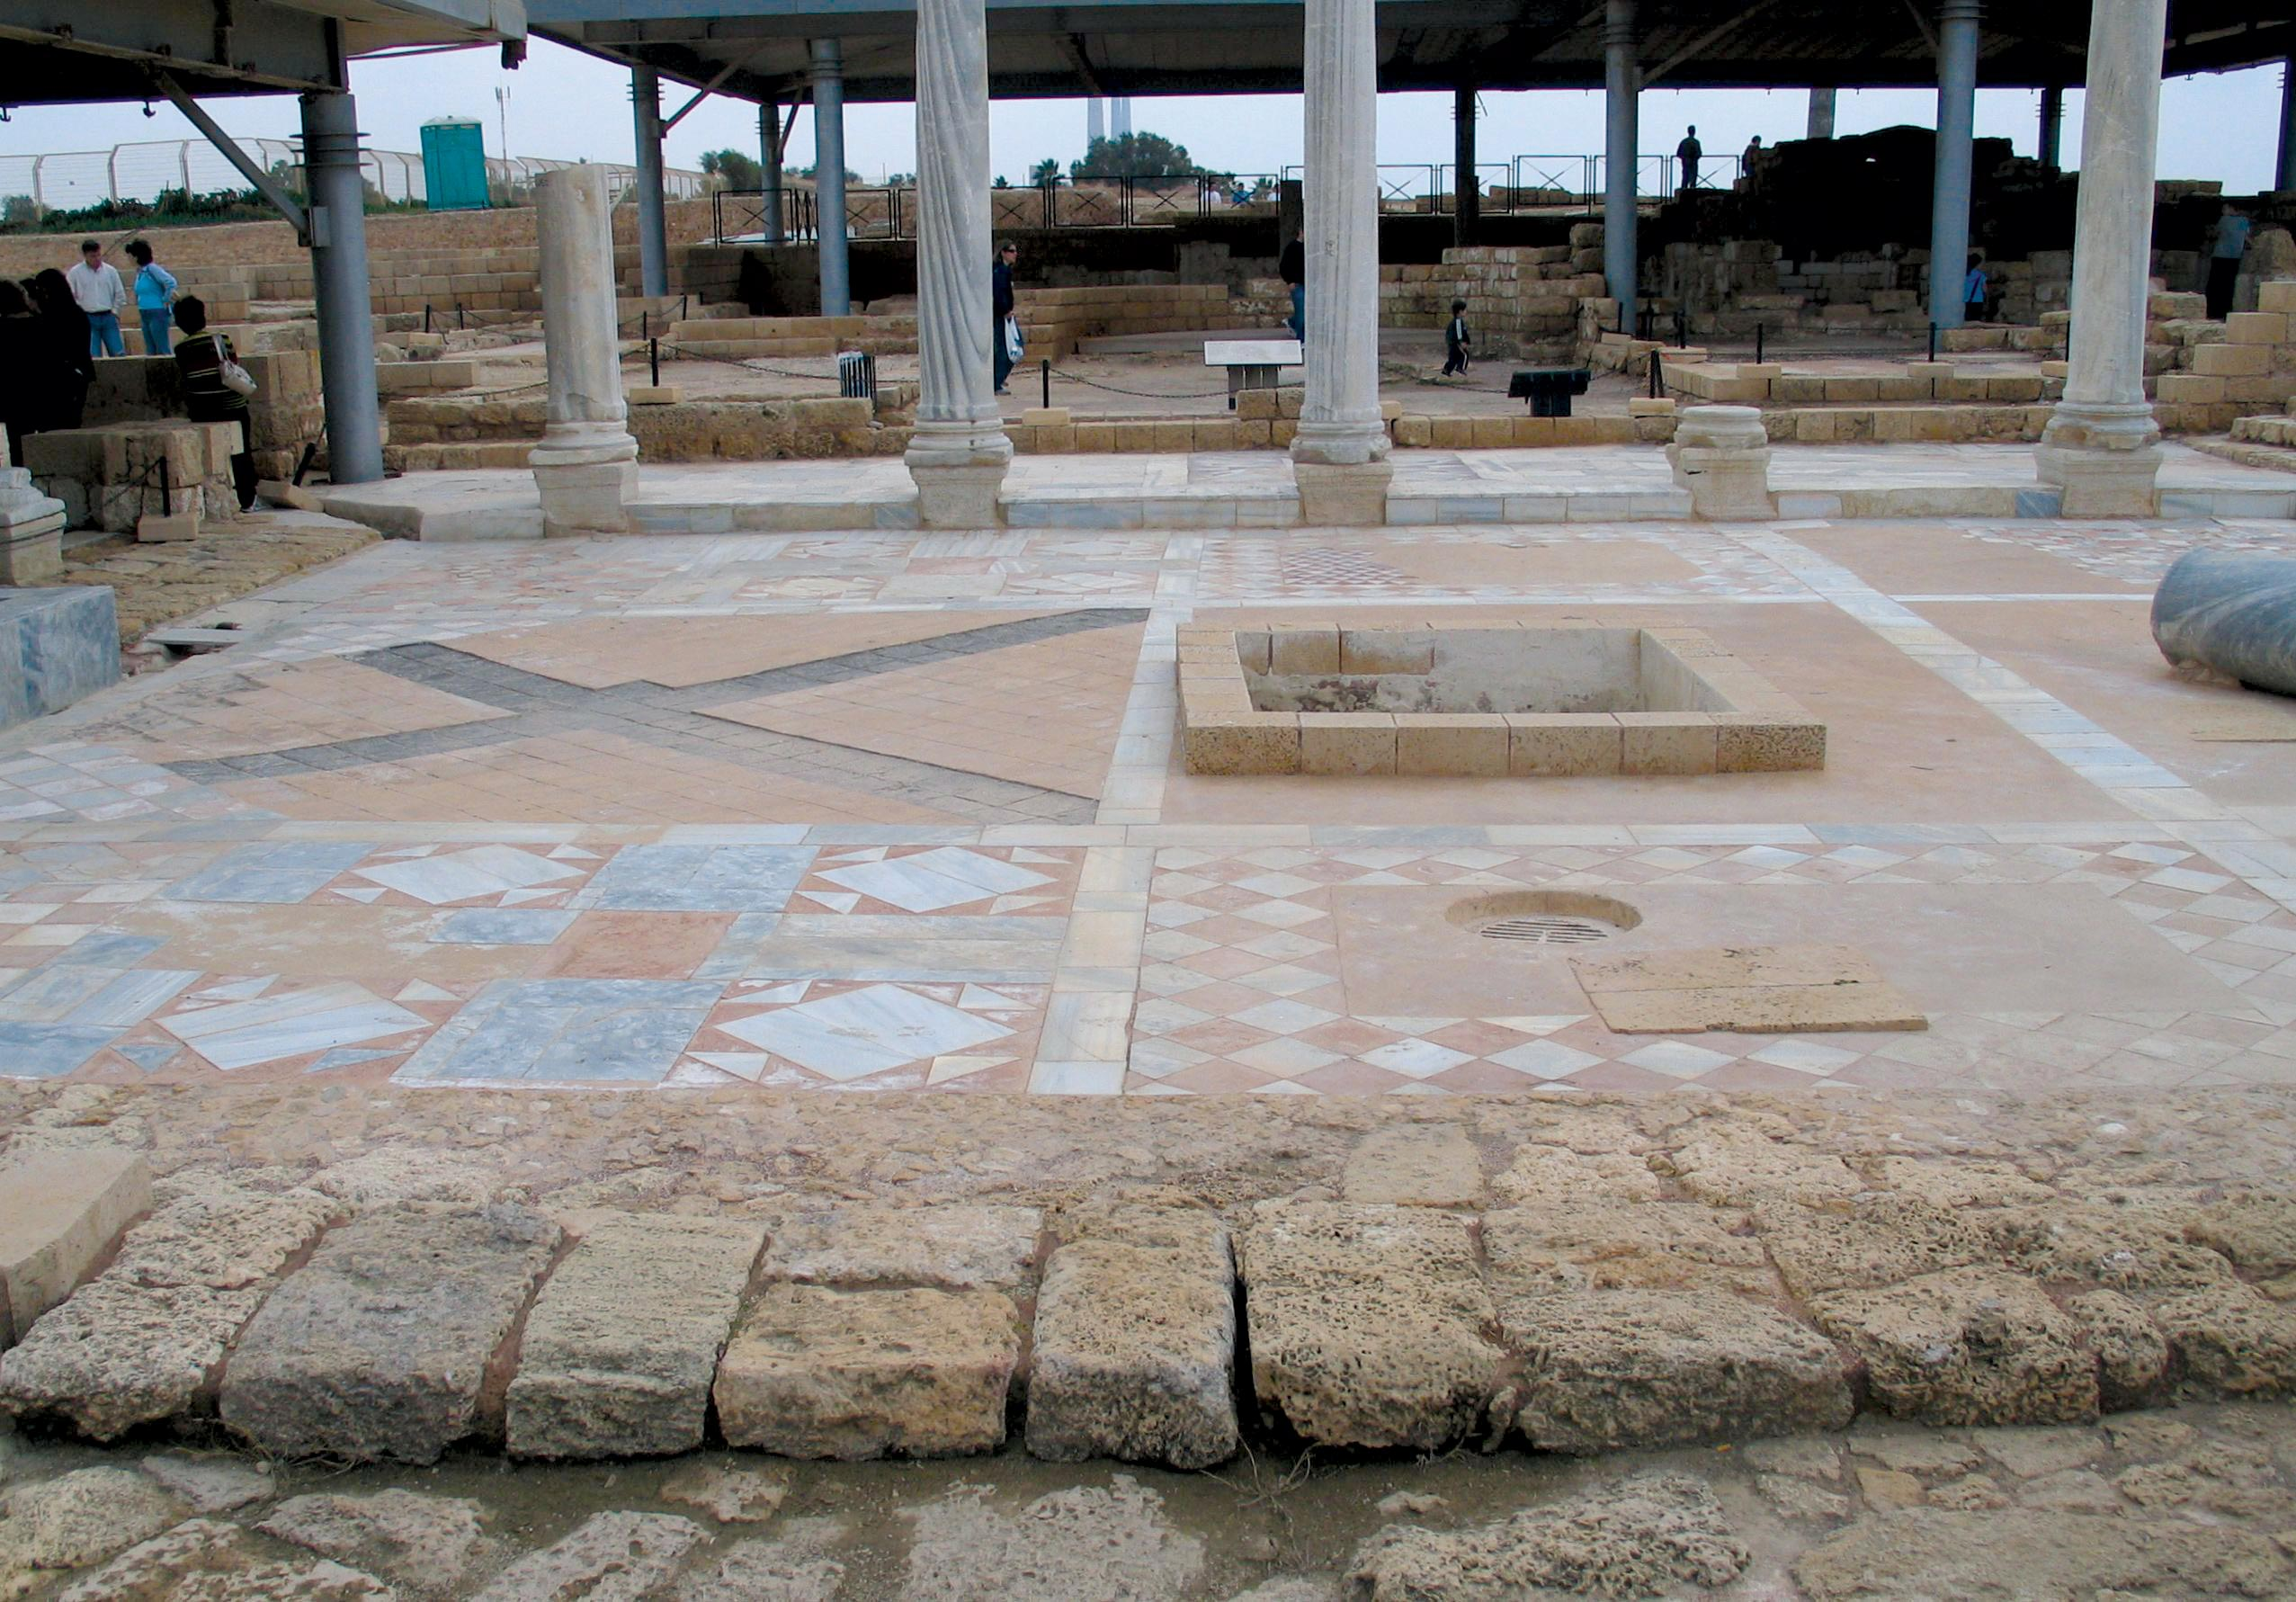 Reconstituted opus sectile floor from a late Roman structure in Caesarea